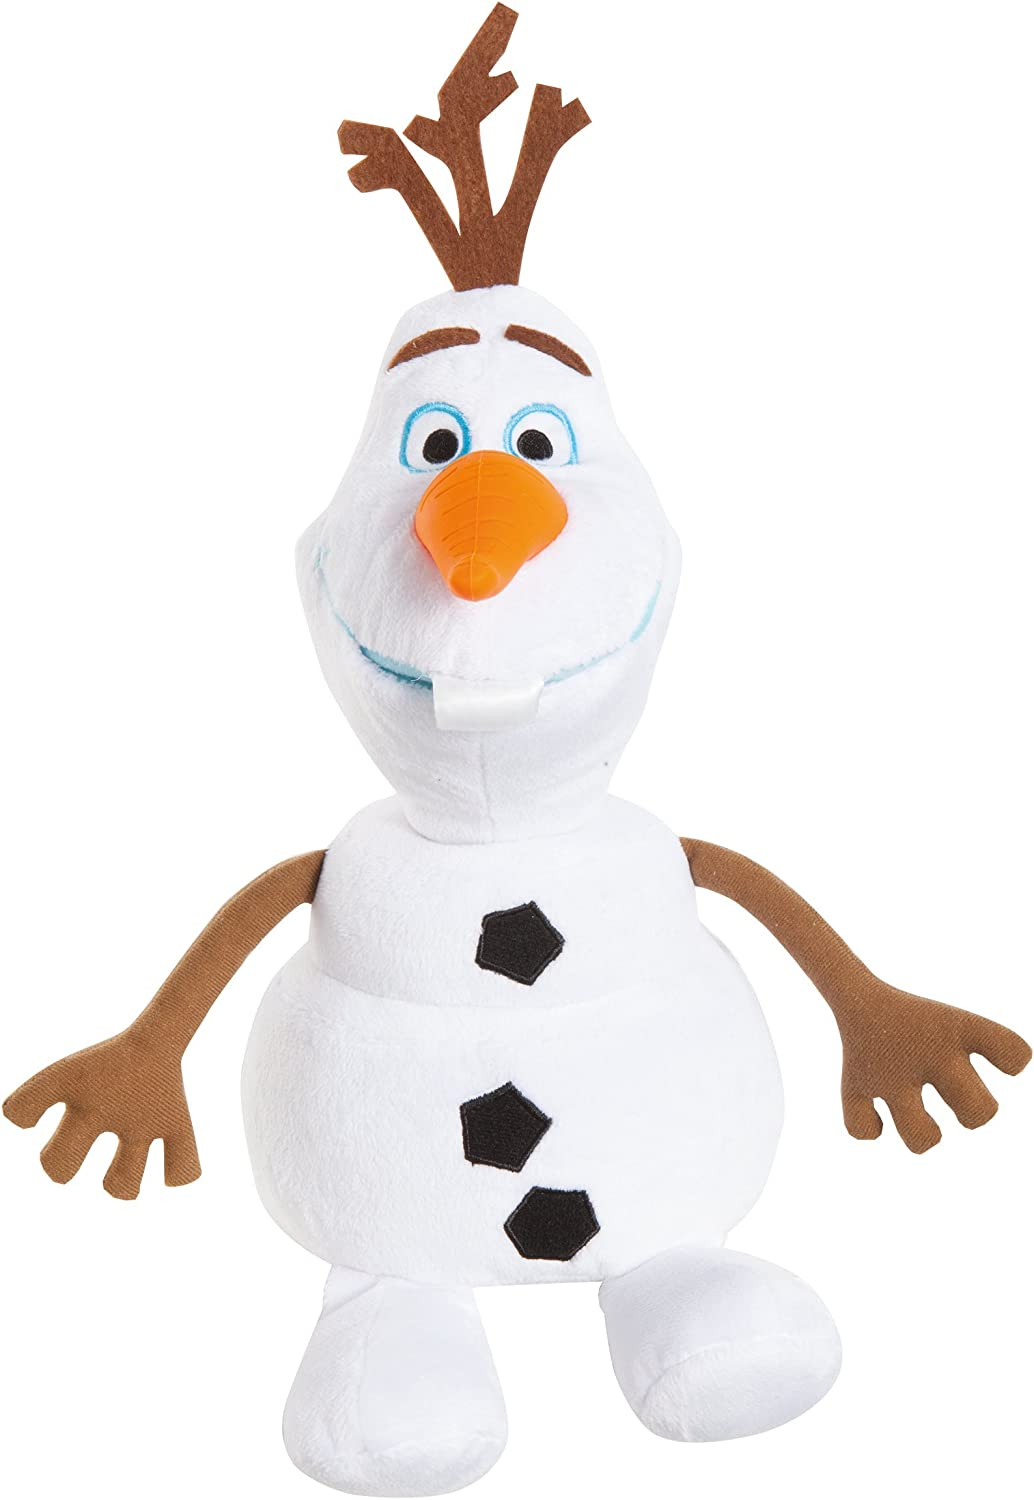 Disney - Frozen Olaf, Peluche y luz de Noche, Color Blanco (Worlds ...